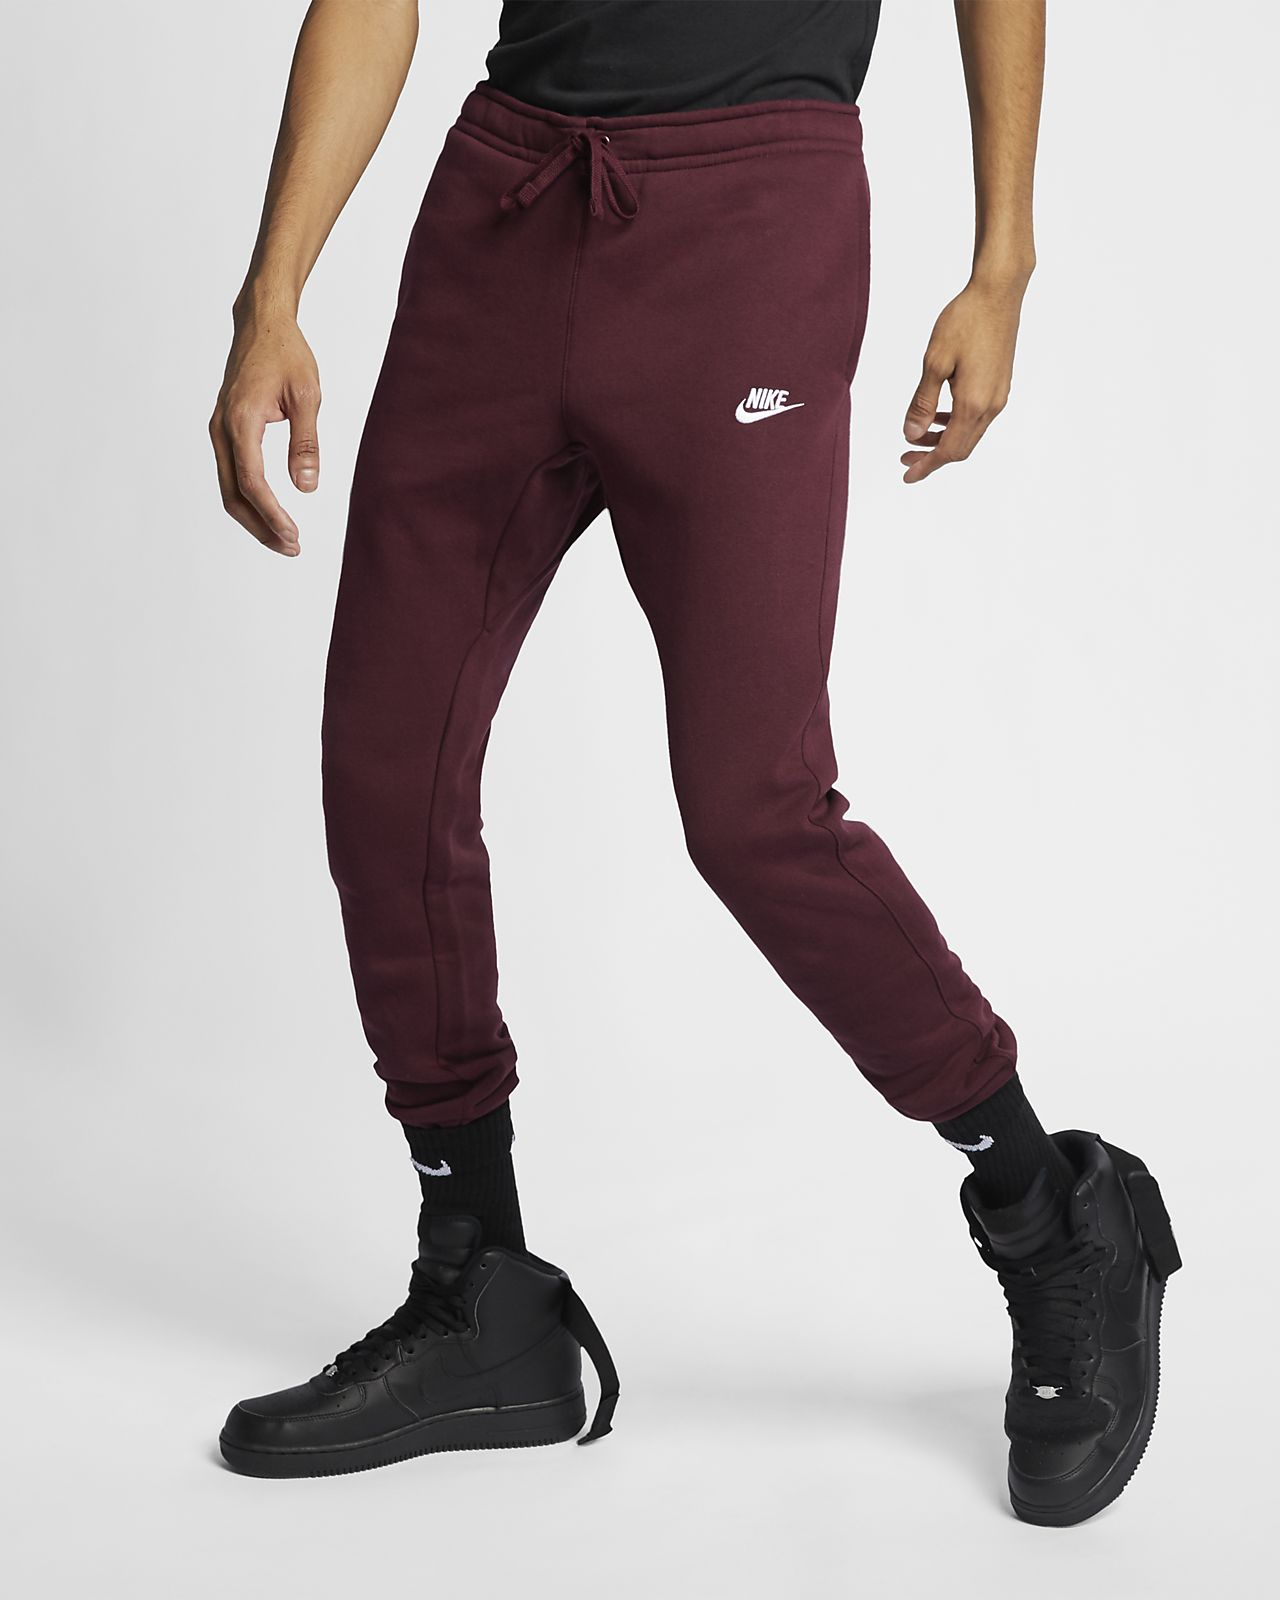 1d719c63aae766 Nike Sportswear Club Fleece Men s Joggers. Nike.com NO